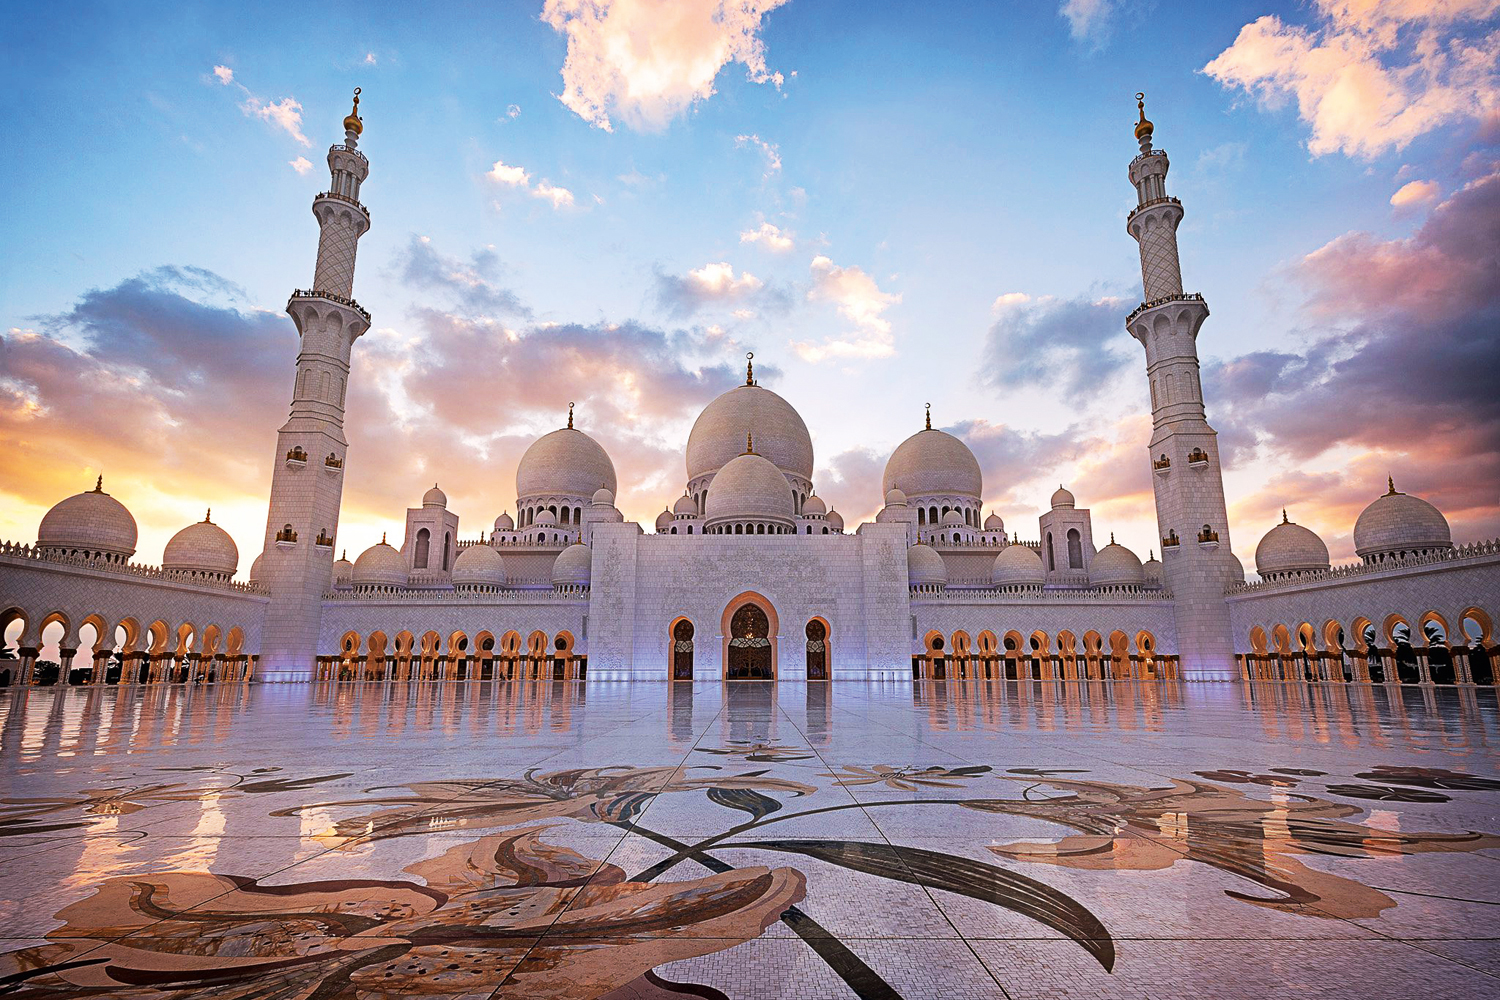 Abu Dhabi's Sheikh Zayed Grand Mosque named one of the best three landmarks  in the world   Attractions   Time Out Abu Dhabi